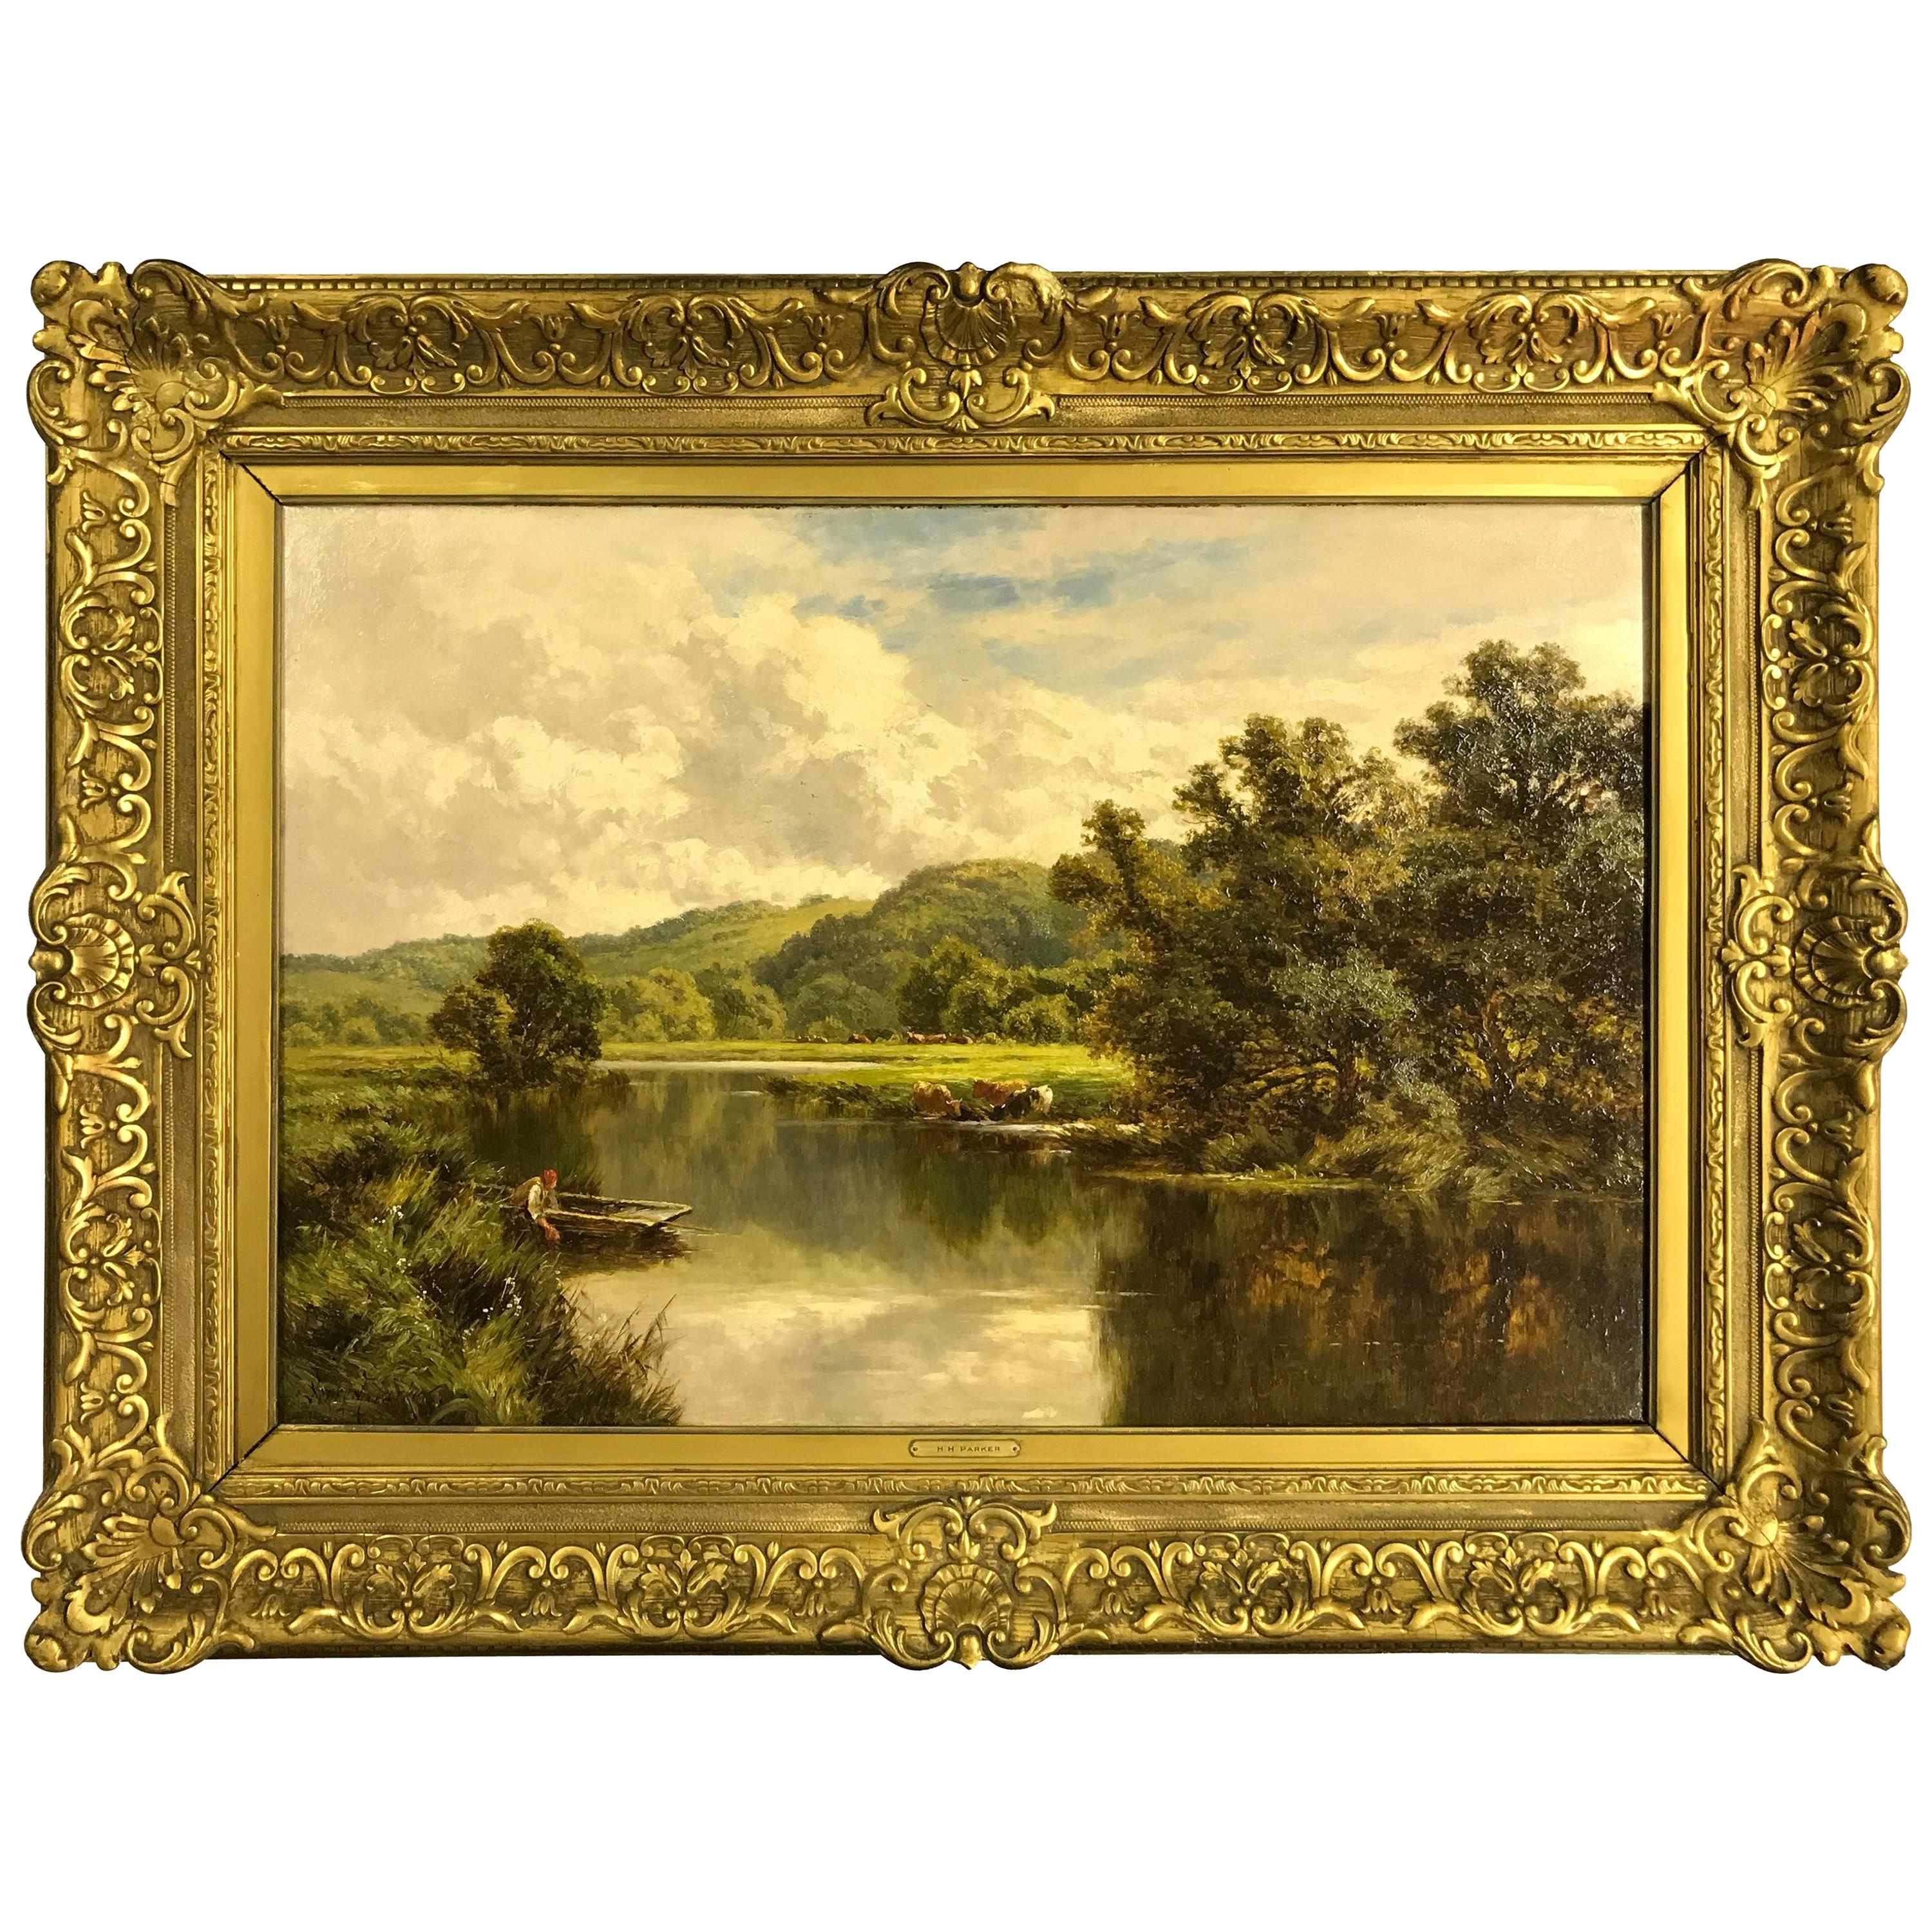 'The Avon' Ringwood, Hampshire by Henry H. Parker '1858-1930'